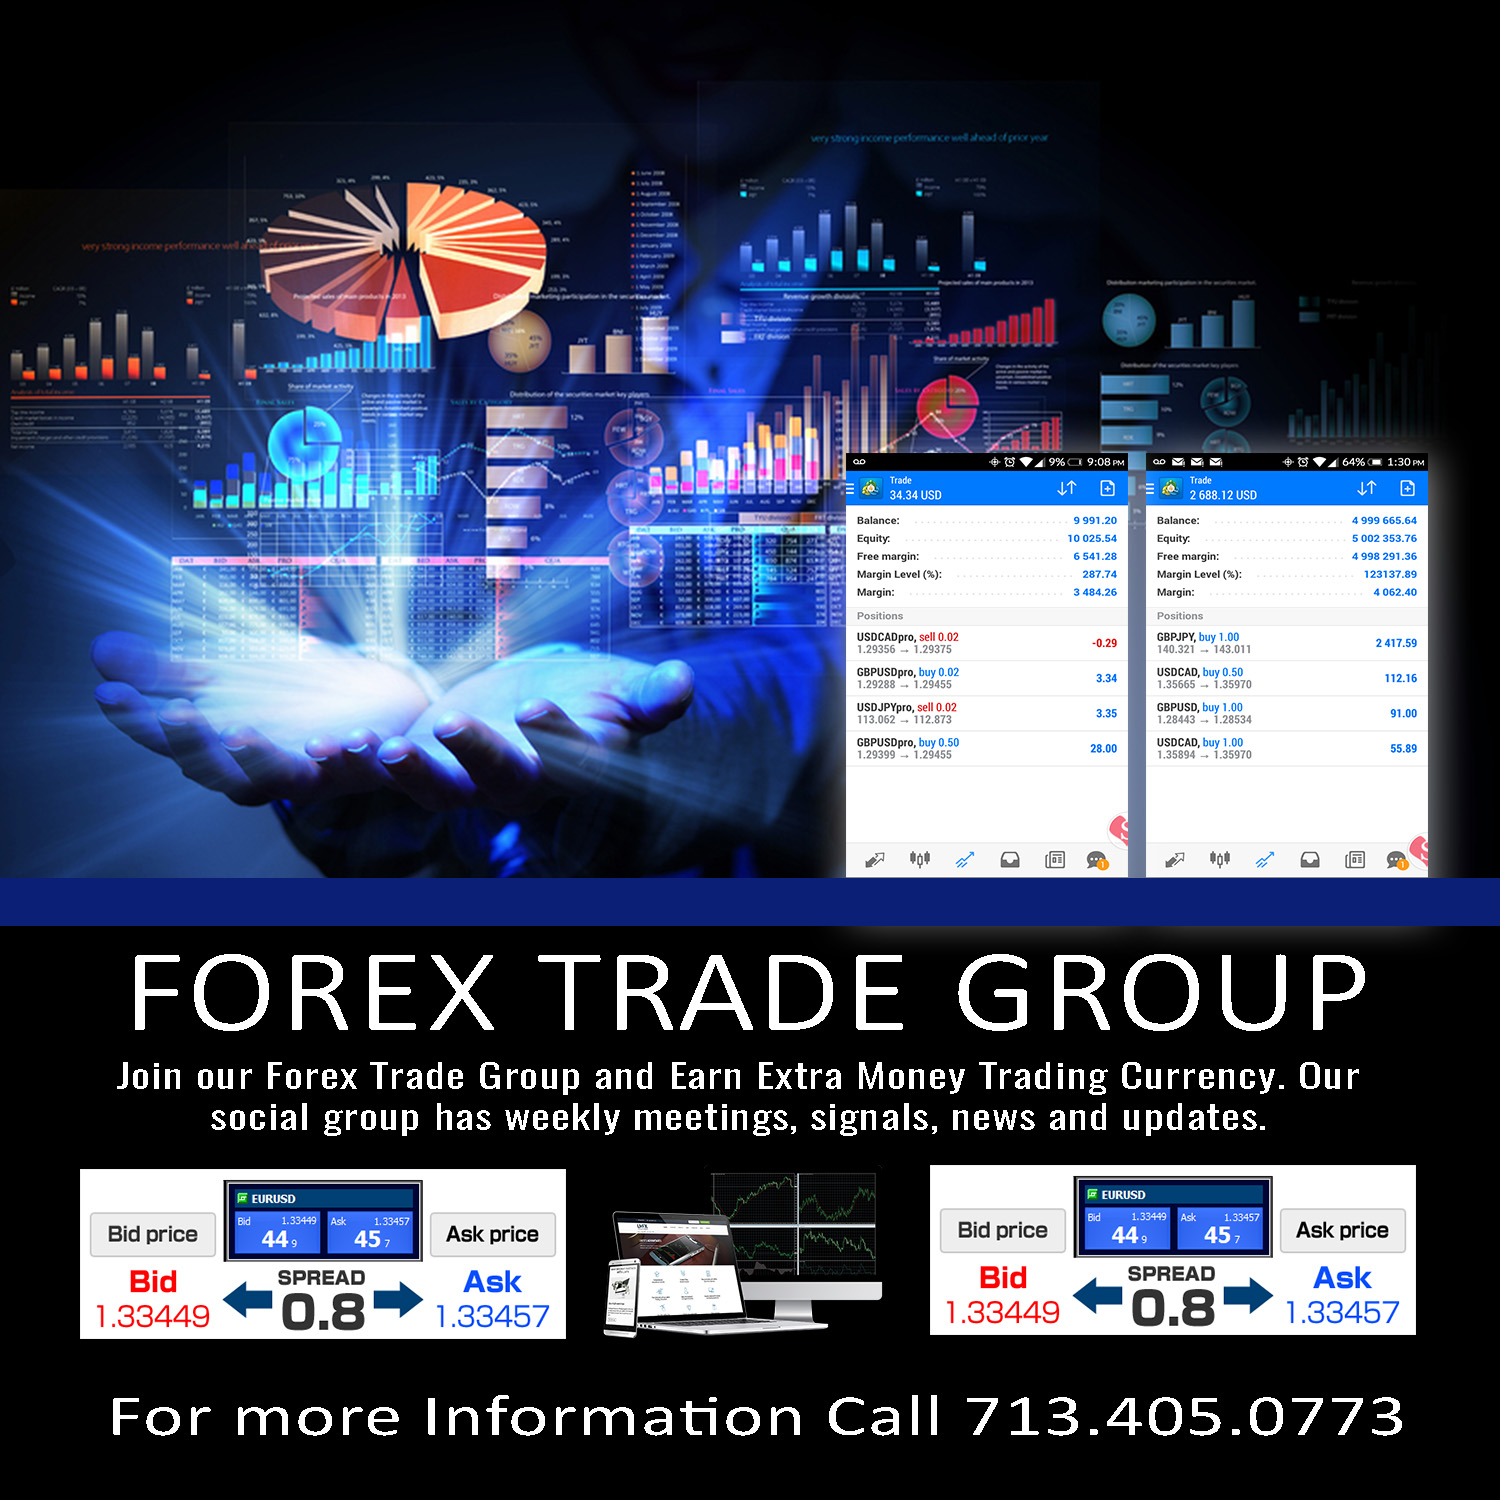 Forex trading can i make money